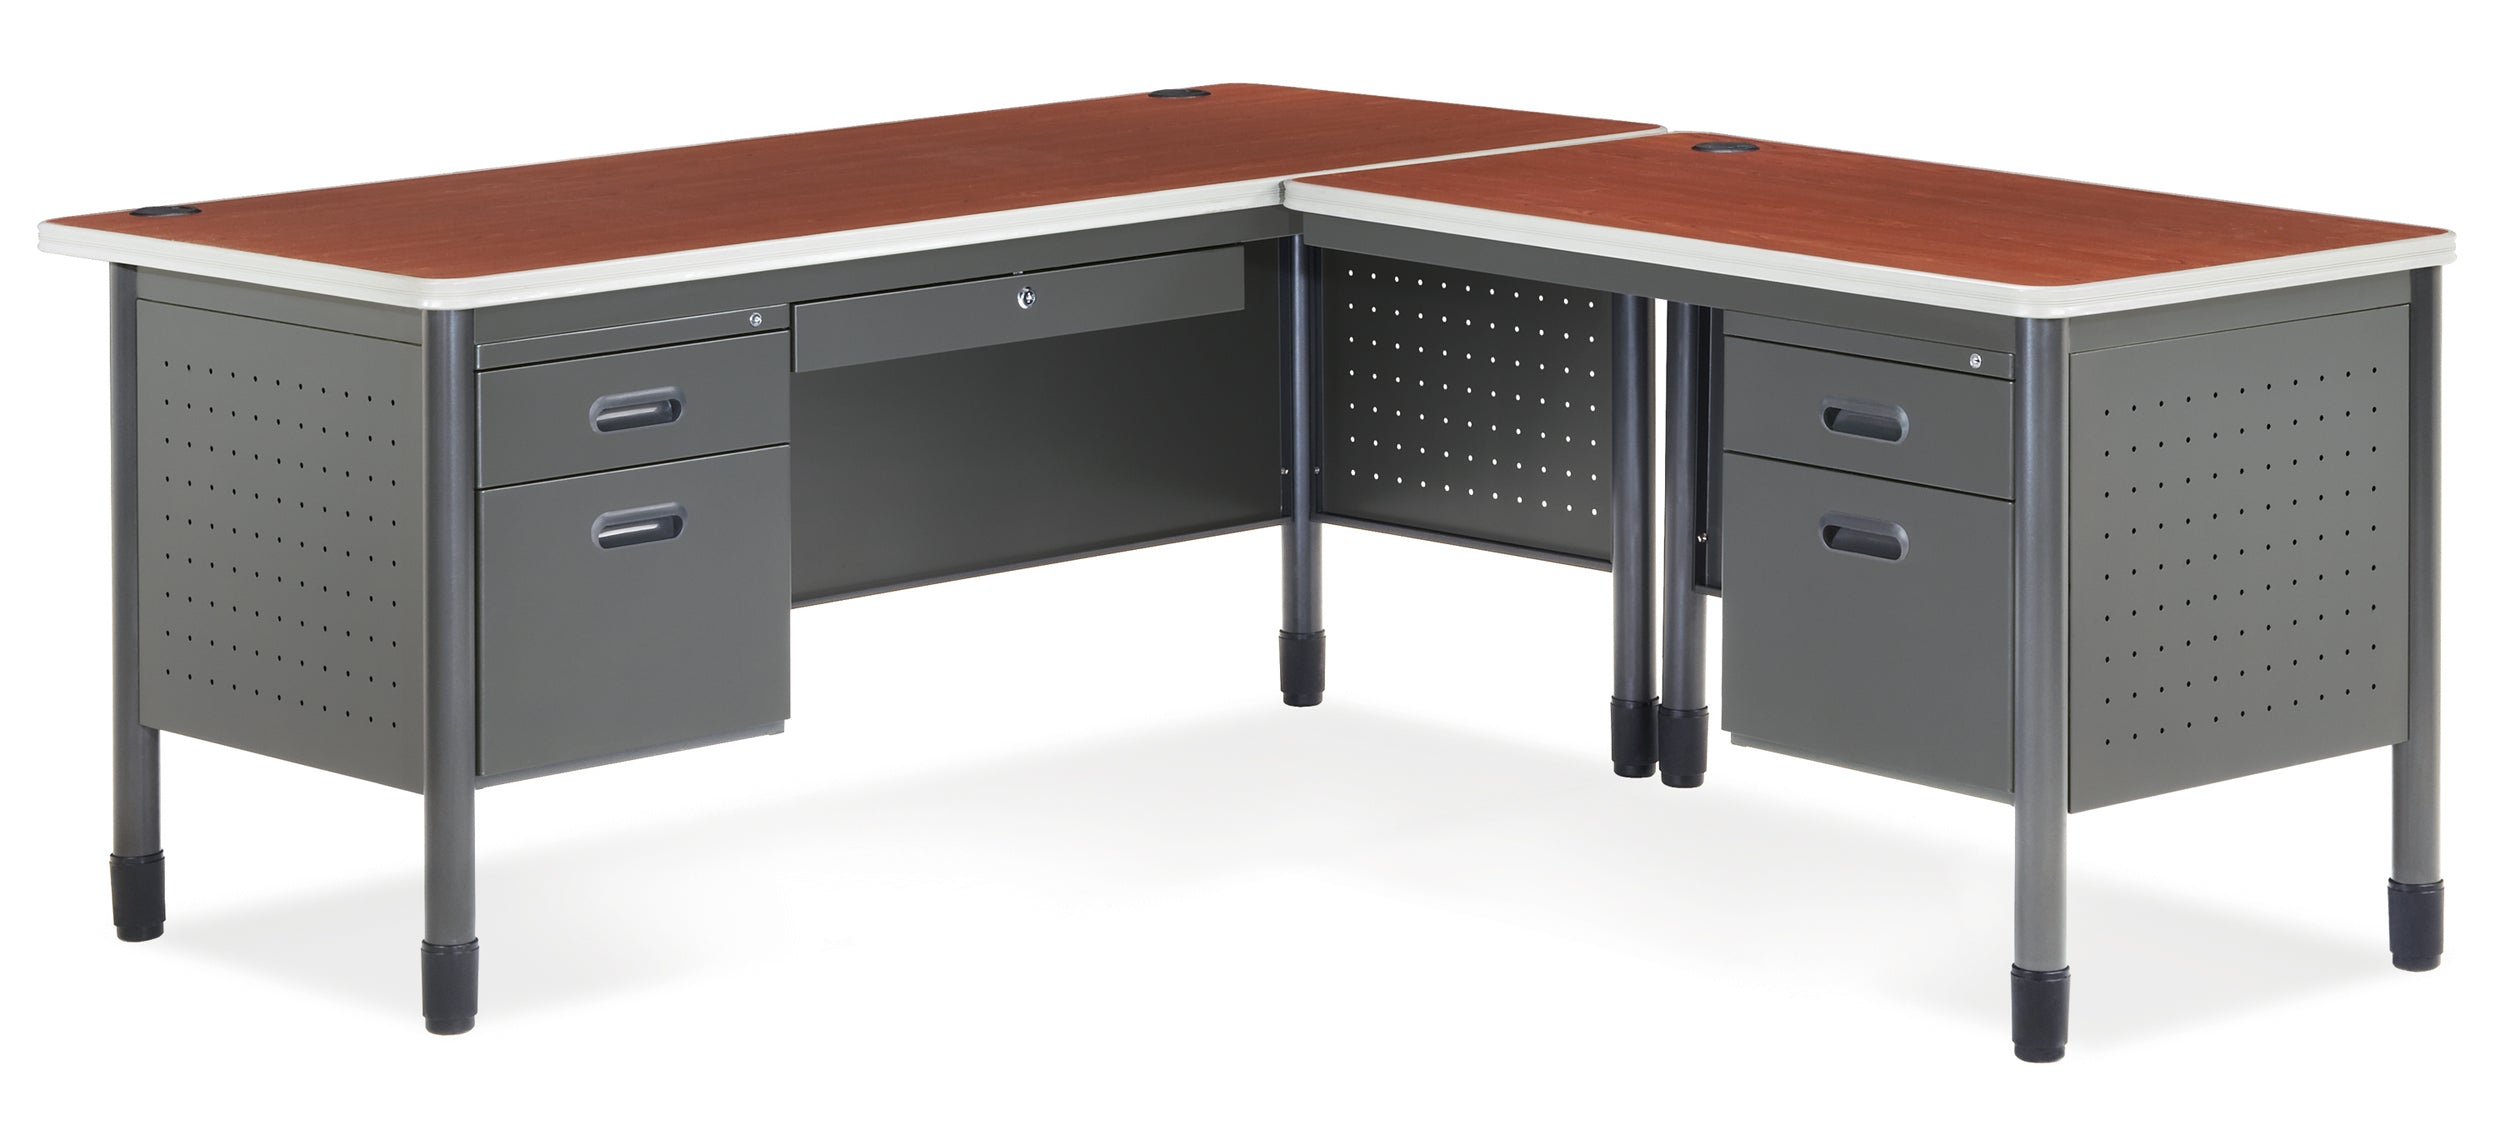 Ofminc Model 66366R Mesa R-Shaped Desk with Right Return